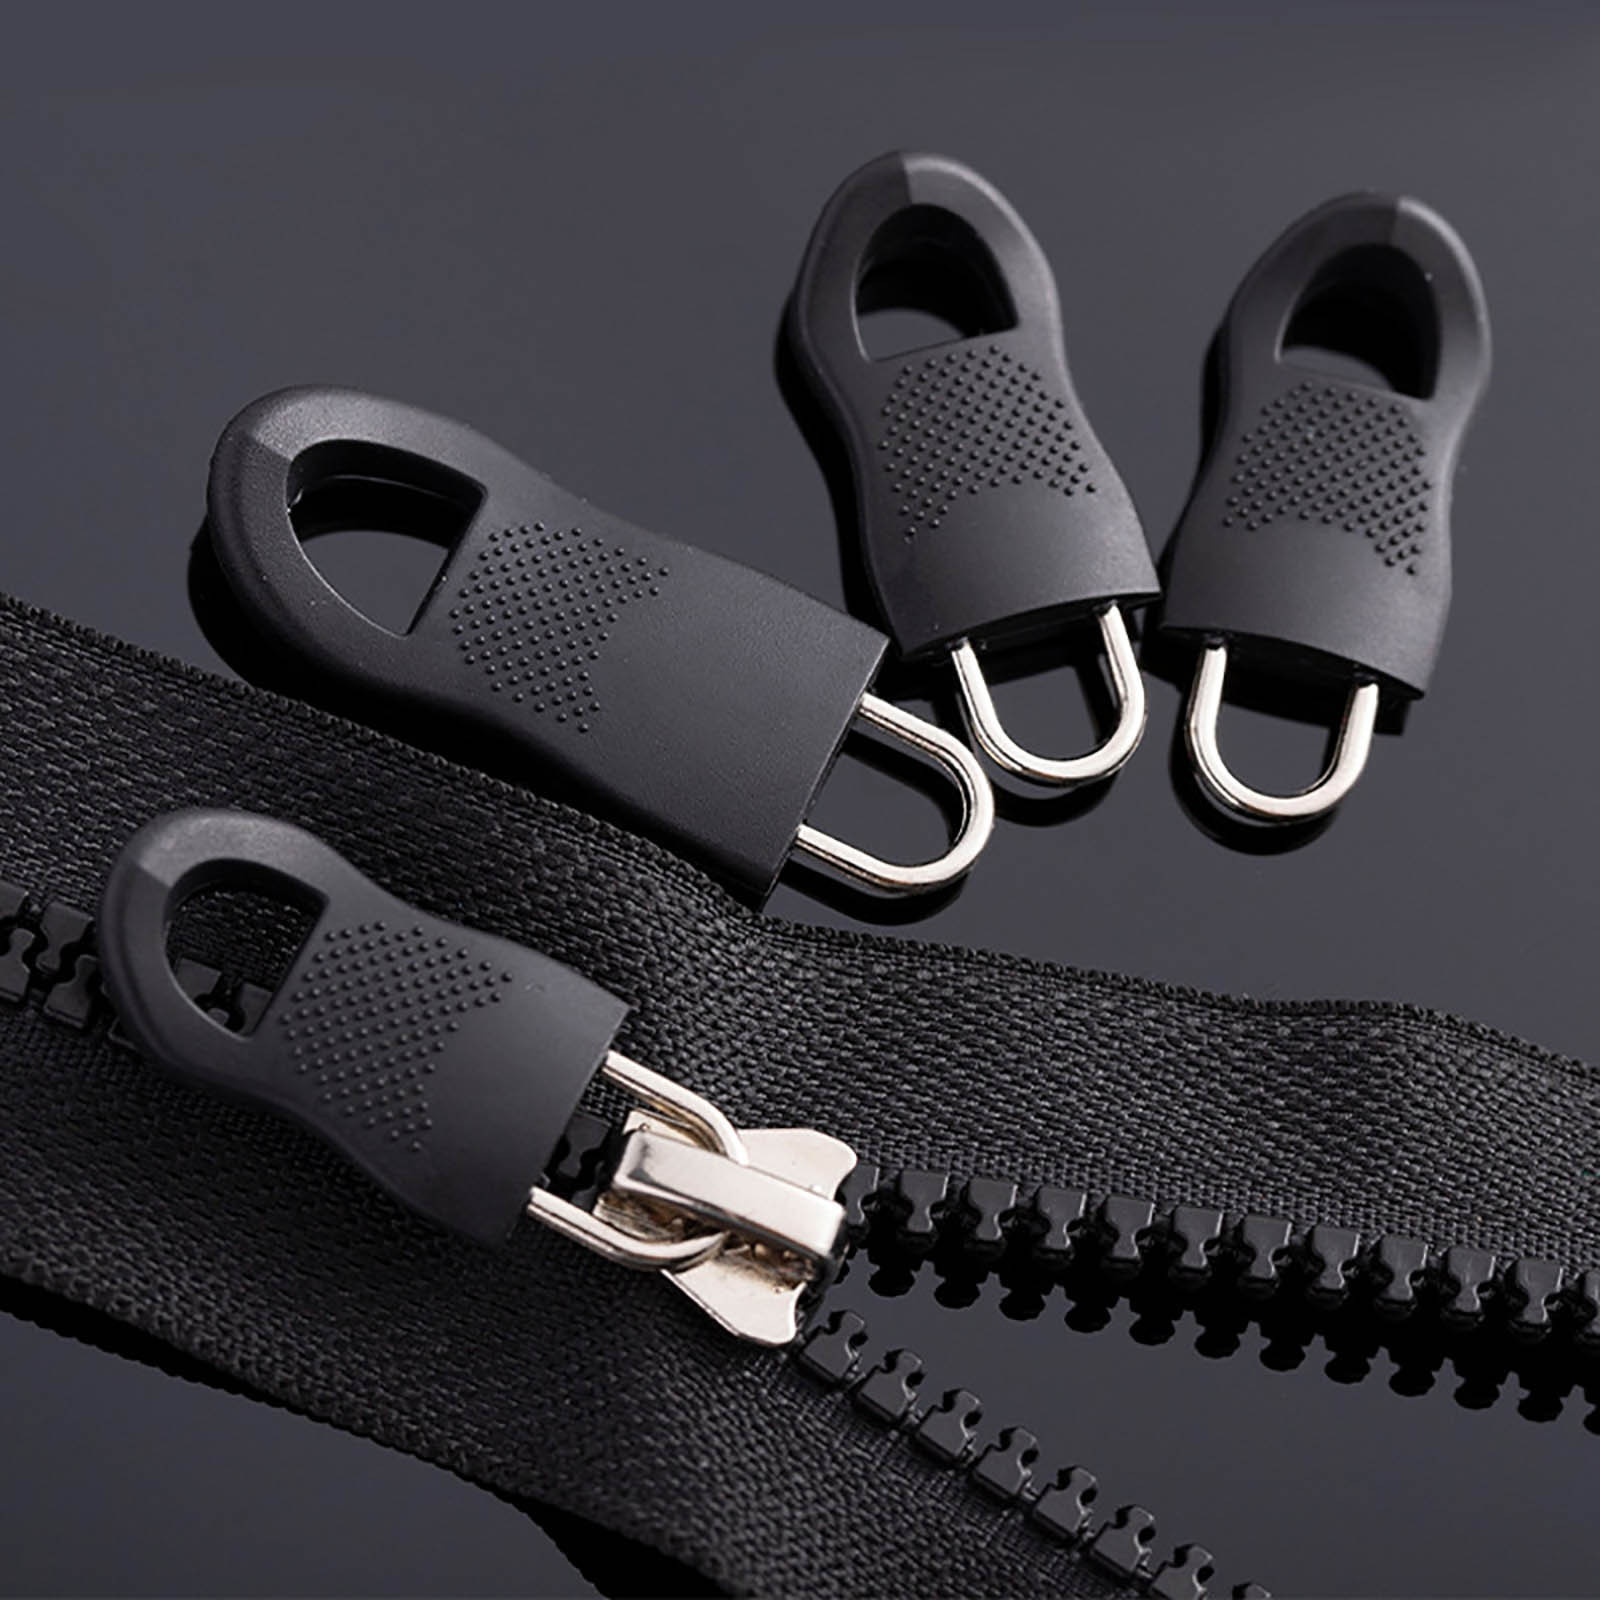 3PC Universal Detachable Zipper Puller Set for Down Jackets and Bags Zipper Head DIY Sewing Instant